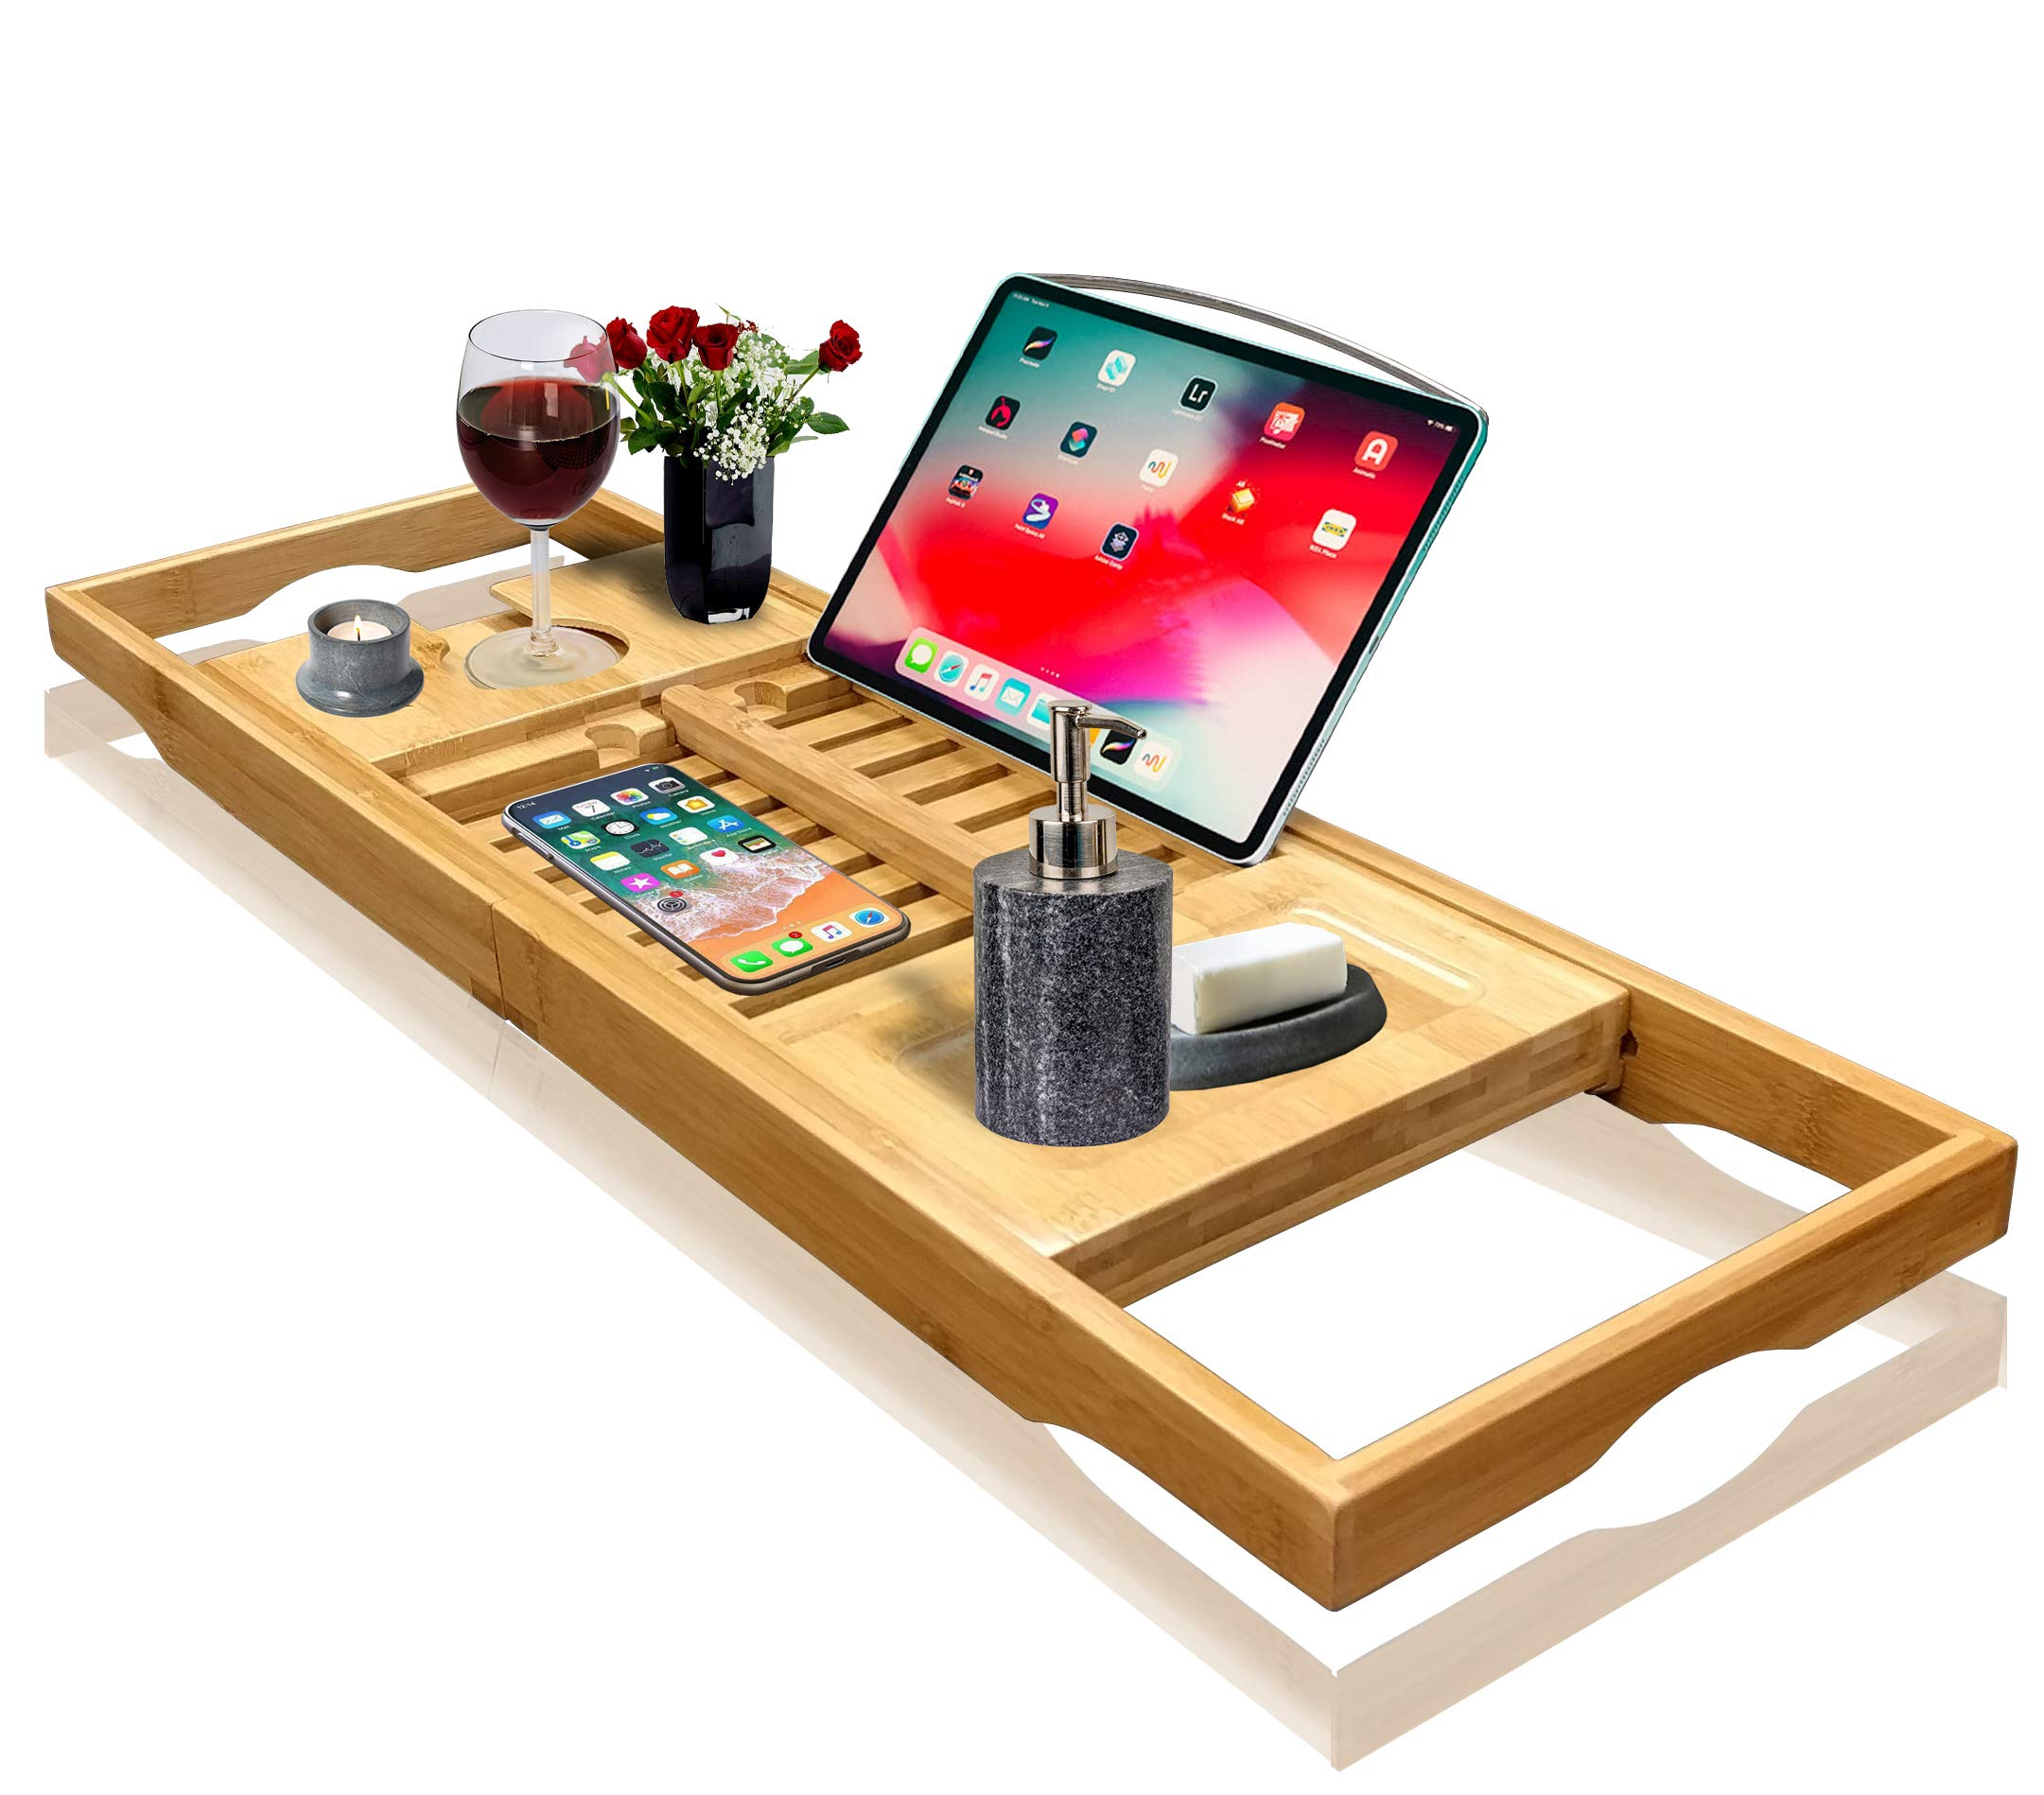 Nature Gear Wood Bamboo Luxury Bath Caddy for Your Book, Tablet or Smartphone – Bathtub Tray with Extending Arms